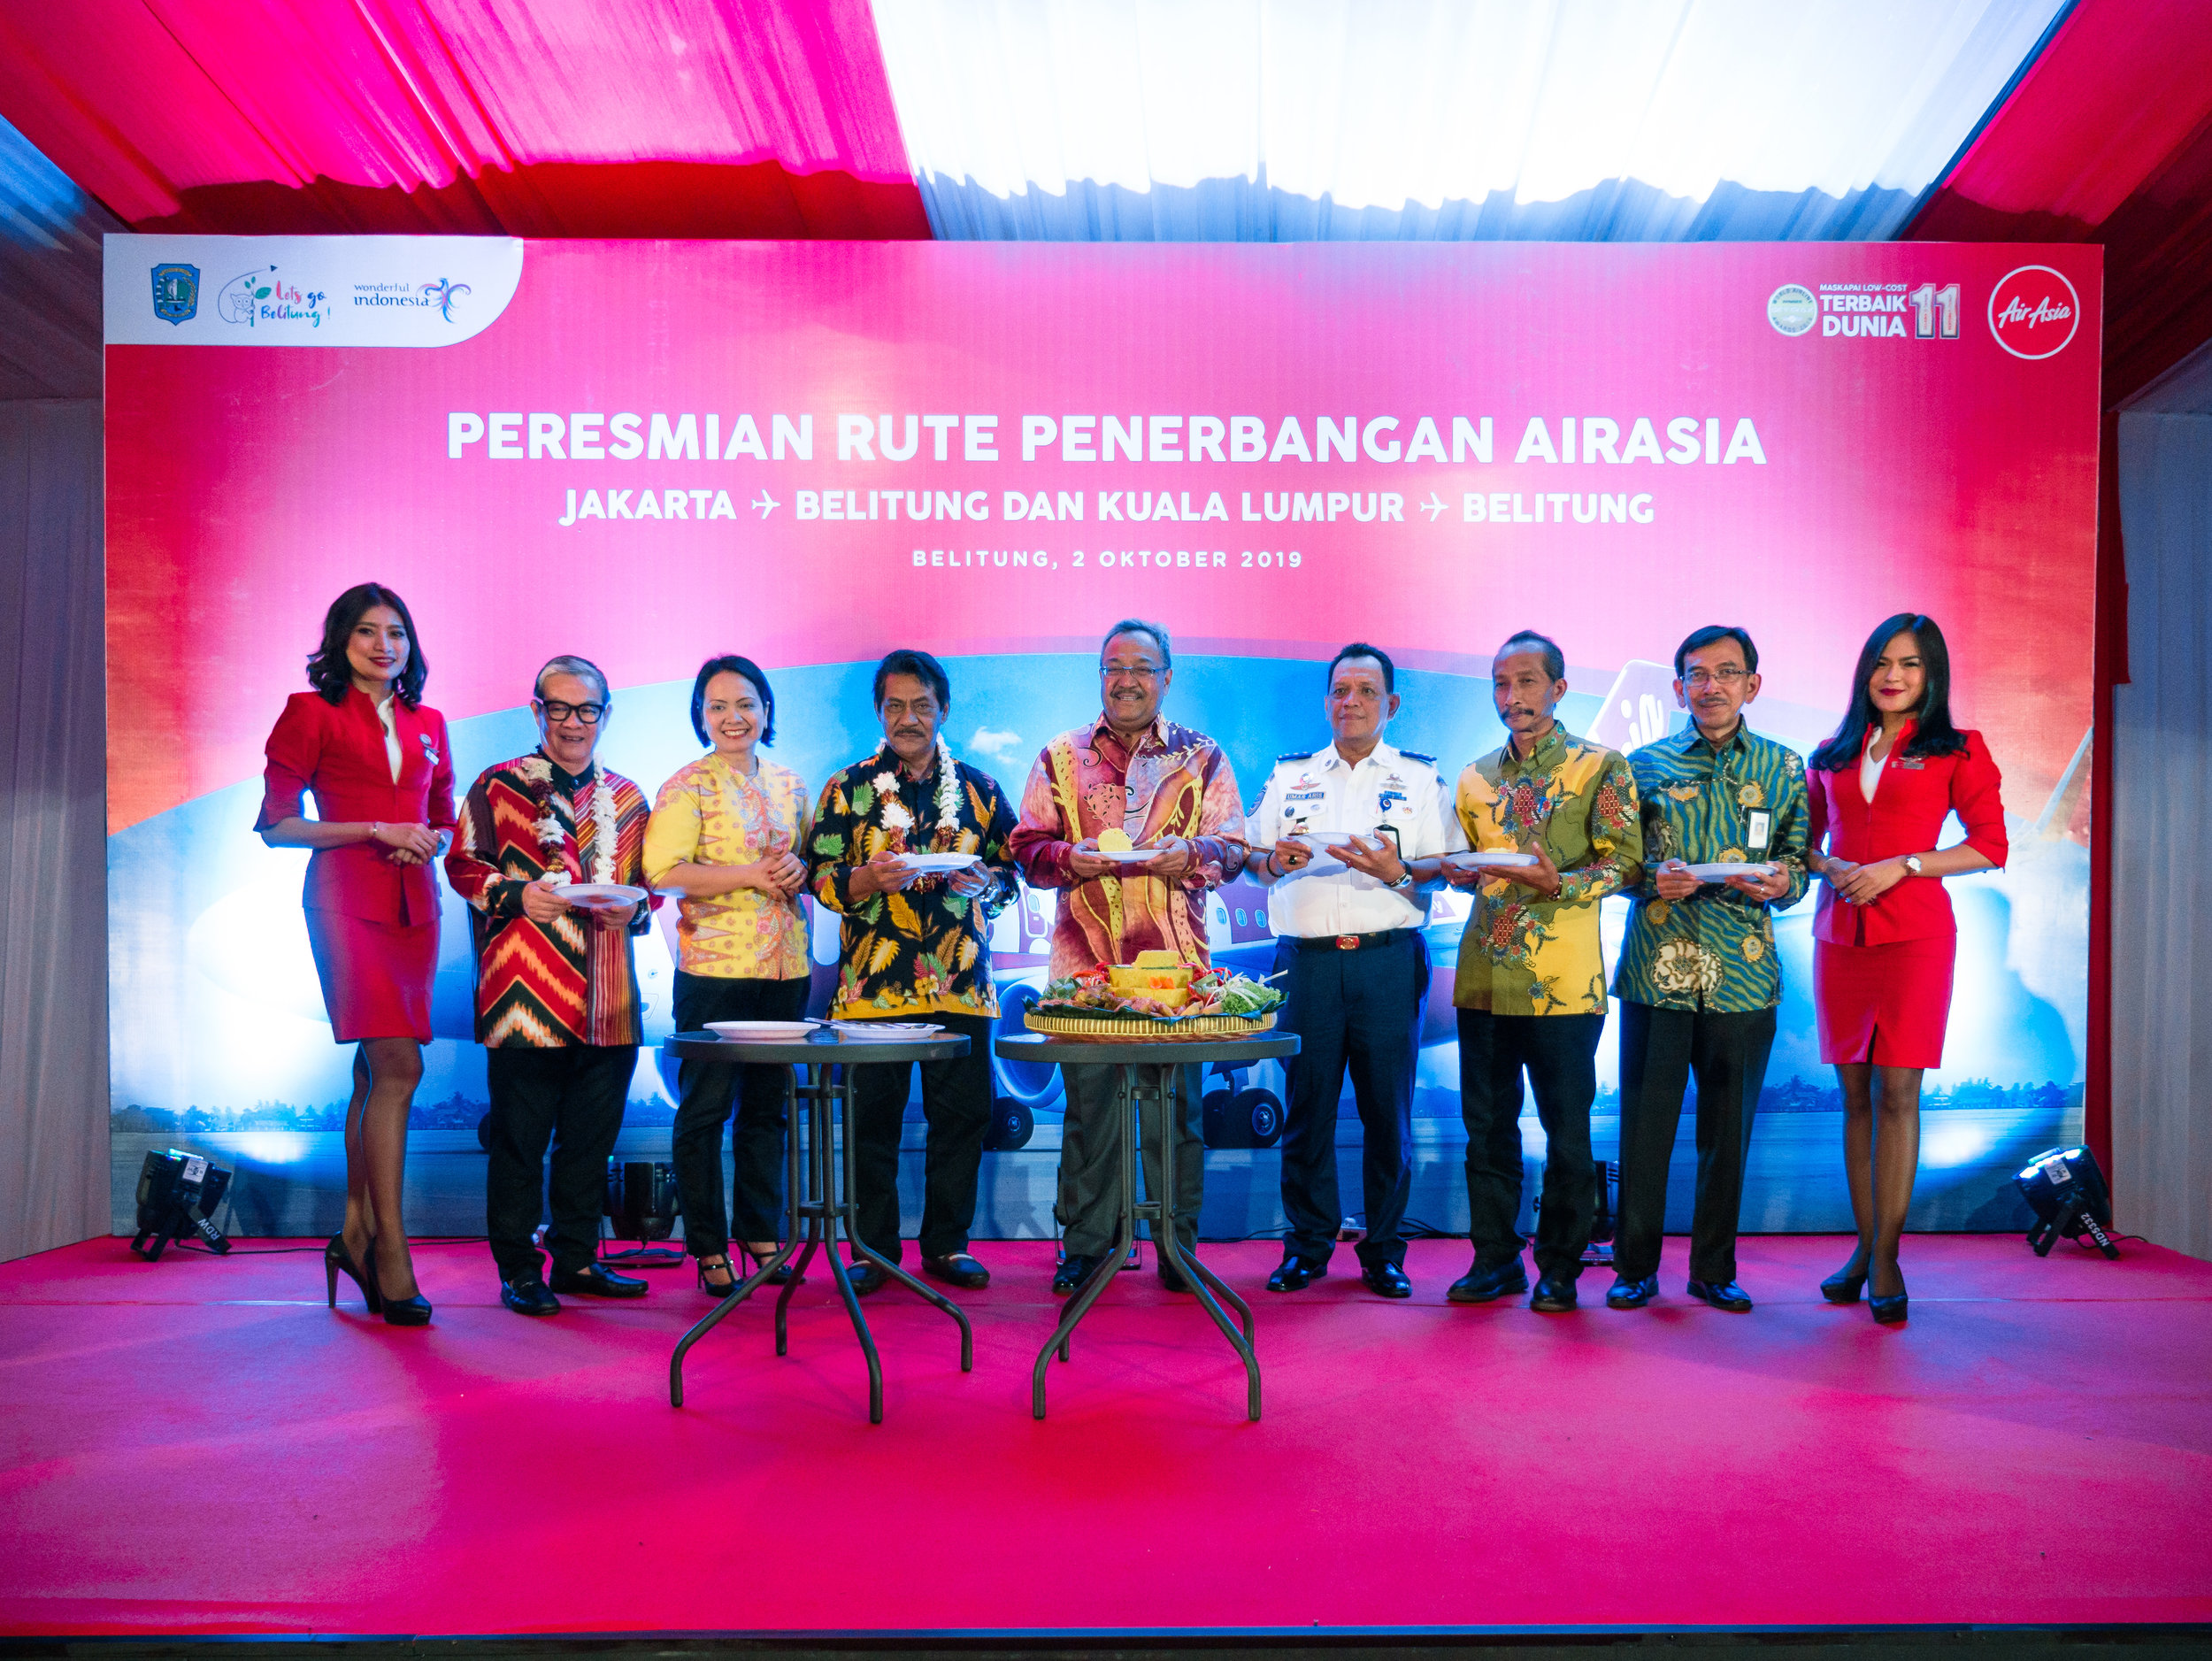 (From left to right) Independent Non-Executive Director of AirAsia Group Berhad, Dato' Fam Lee Ee; AirAsia Indonesia Deputy CEO Veranita Yosephine; Regent of Belitung Sahani Saleh; Malaysia's Ambassador to Indonesia, His Excellency Zainal Abidin Bakar; Special Staff of Minister of Transportation on Law and Bureaucracy Reform, Dr Umar Aris; Head of Tourism Department of Bangka Belitung Islands,  Rivai;  Special Staff of the Minister of Tourism on Tourism Infrastructure, Judi Rifajantoro flanked by AirAsia cabin crew during the inaugural ceremony of AirAsia's flights in Belitung.